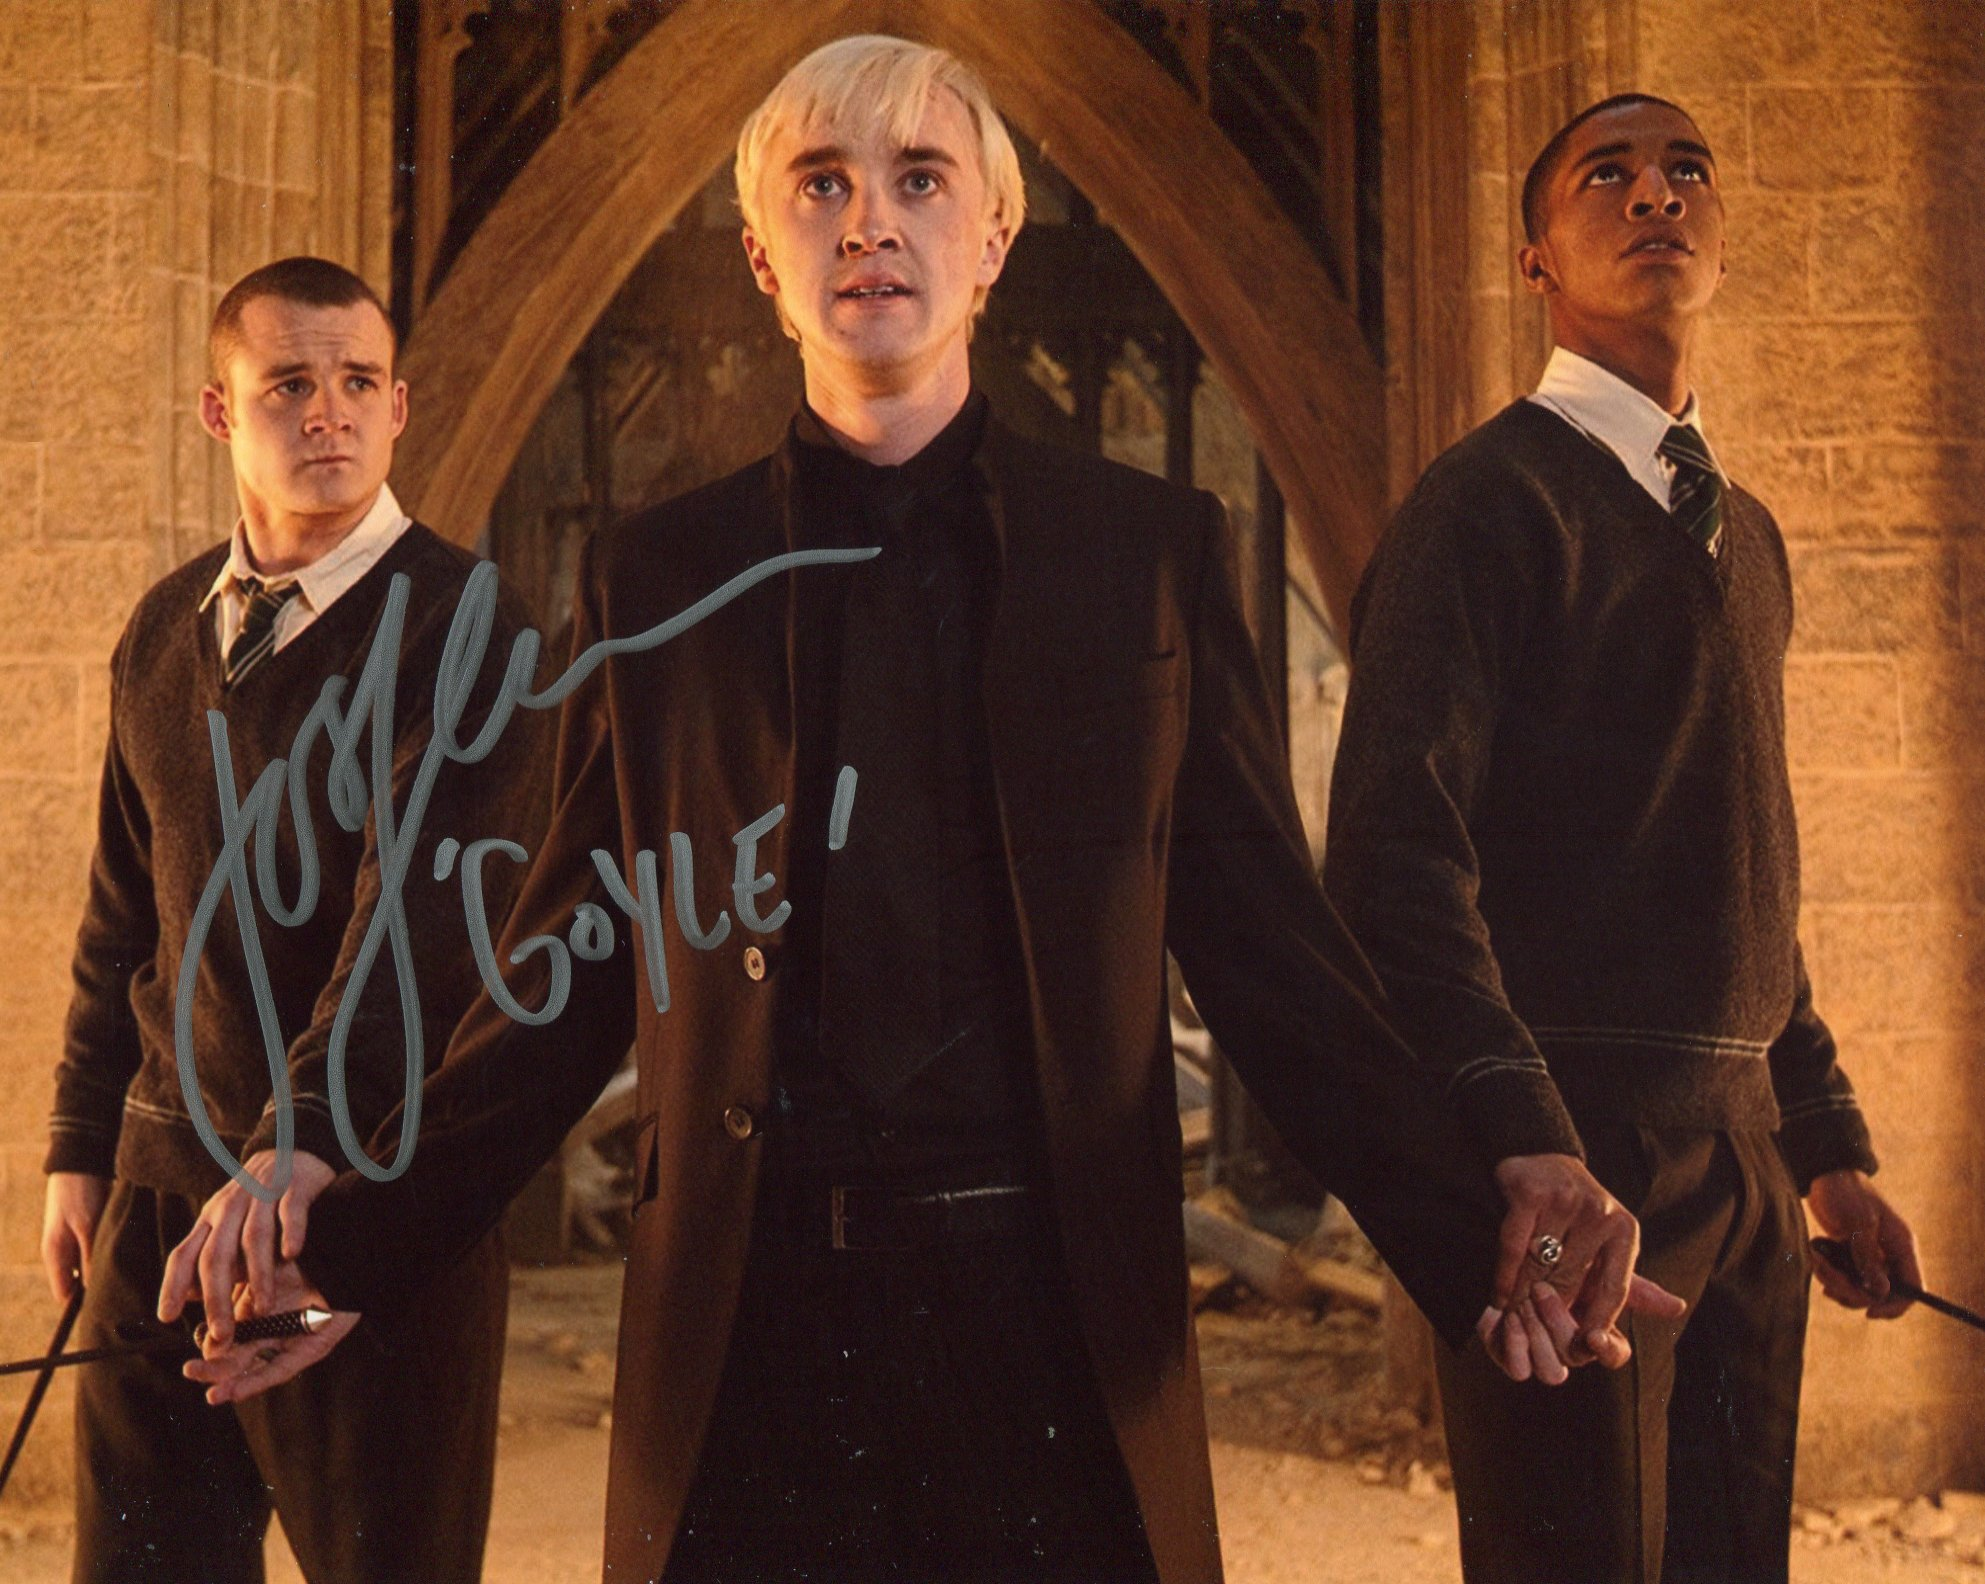 Harry Potter 8x10 movie photo signed by actor Josh Herdman as Goyle. Good condition. All